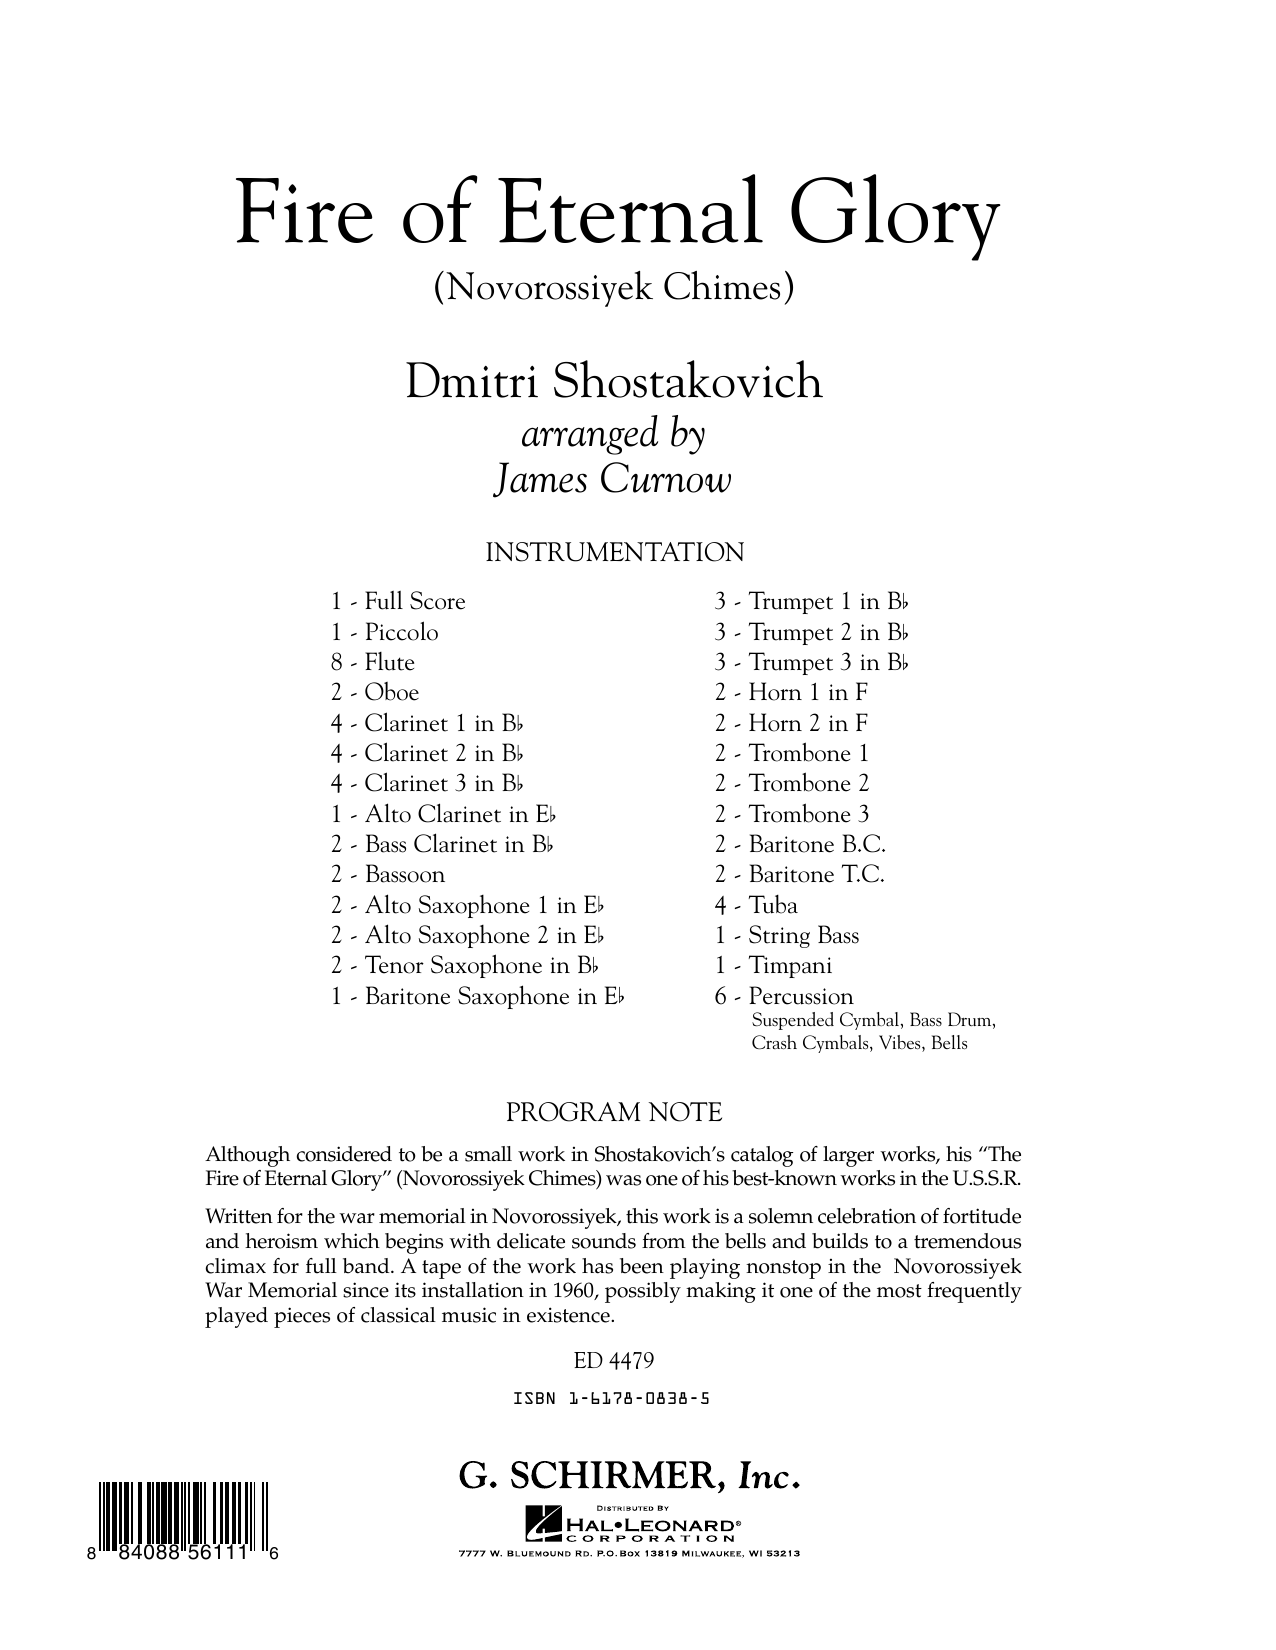 James Curnow Fire of Eternal Glory (Novorossiyek Chimes) - Conductor Score (Full Score) sheet music notes and chords. Download Printable PDF.